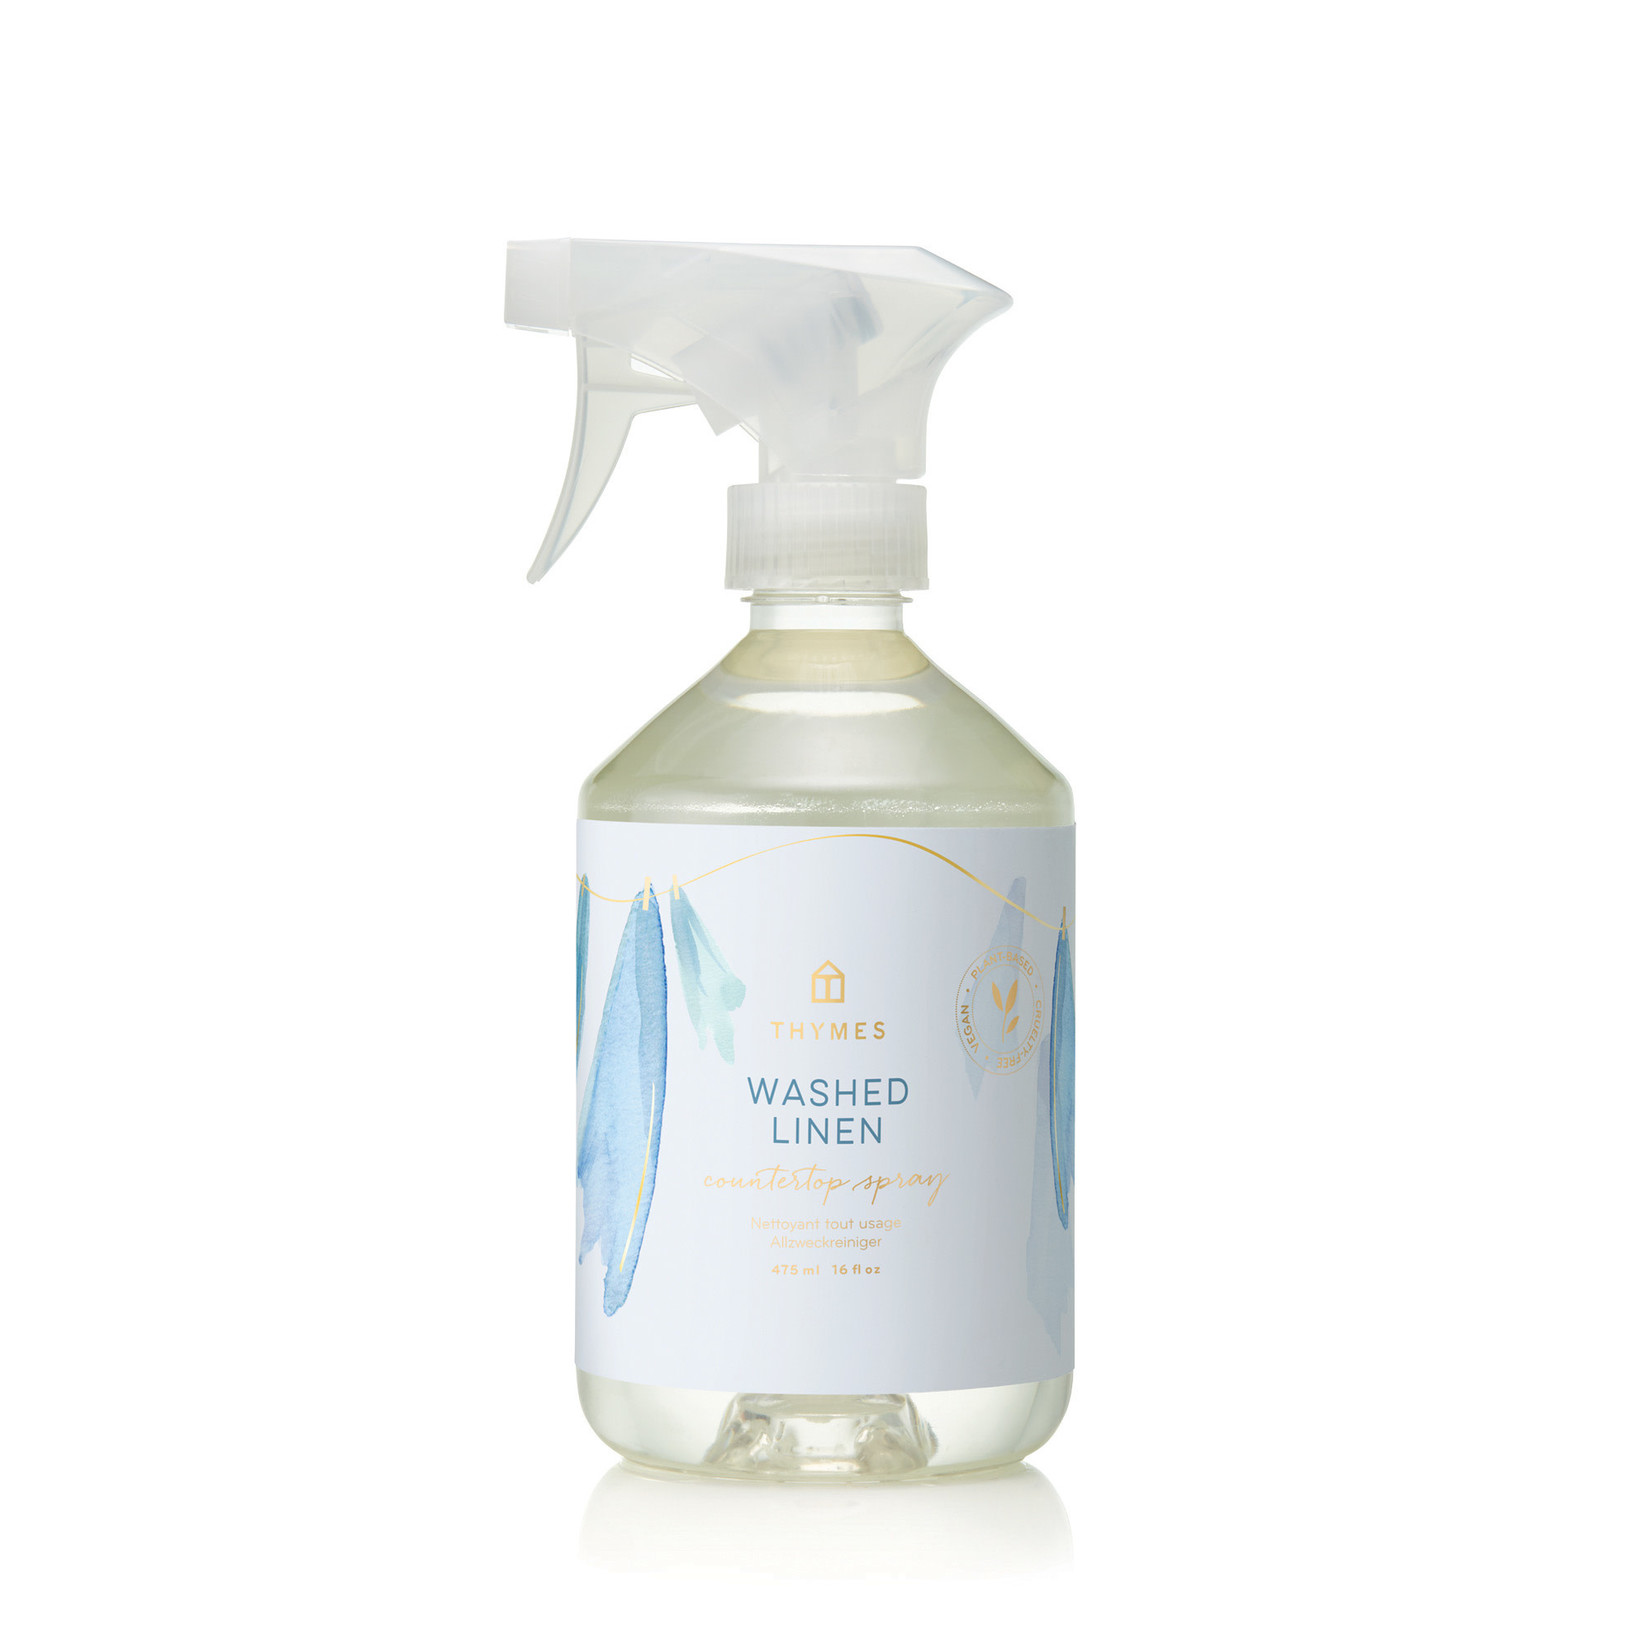 Thymes Washed Linen Countertop Spray